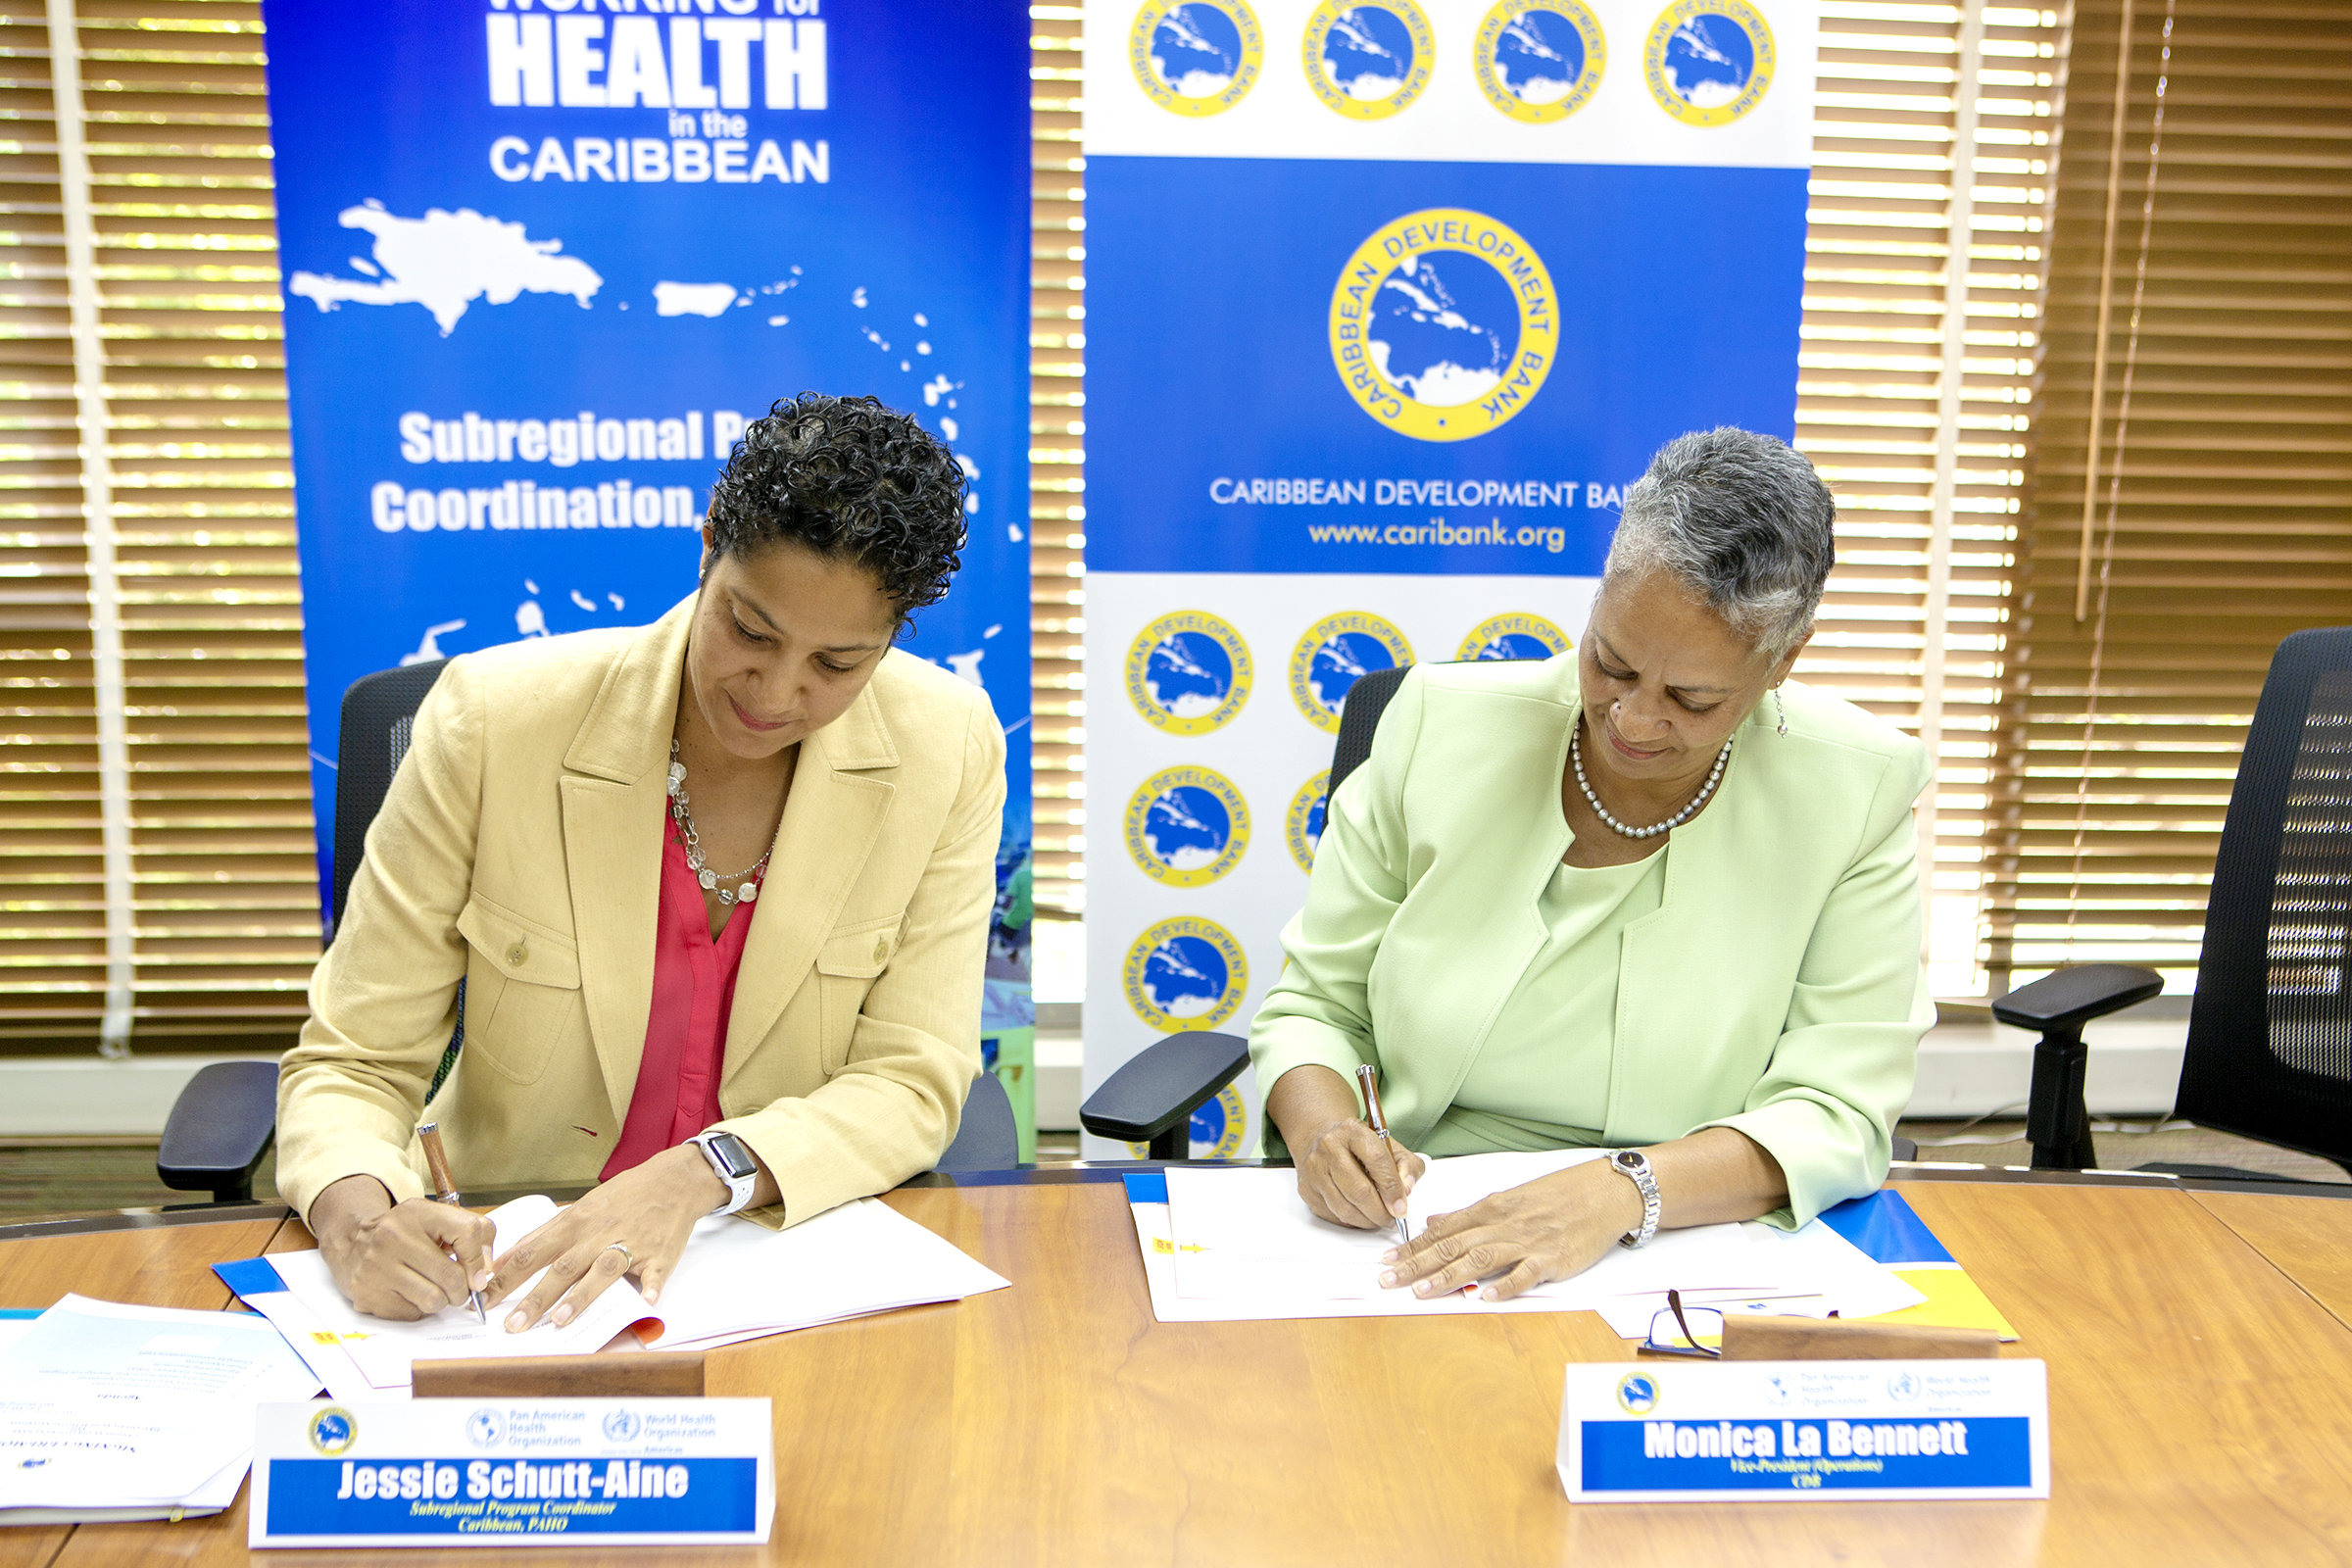 Jesse Schutt Aine (left), Subregional Program Coordinator, Caribbean, PAHO and Monica La Bennett (right), Vice-President (Operations), CDB, sign the agreement to enhance capacity for mental health and psychosocial support in disaster management in the Caribbean. The signing took place on June 13, 2018, at CDB's headquarters in Barbados.